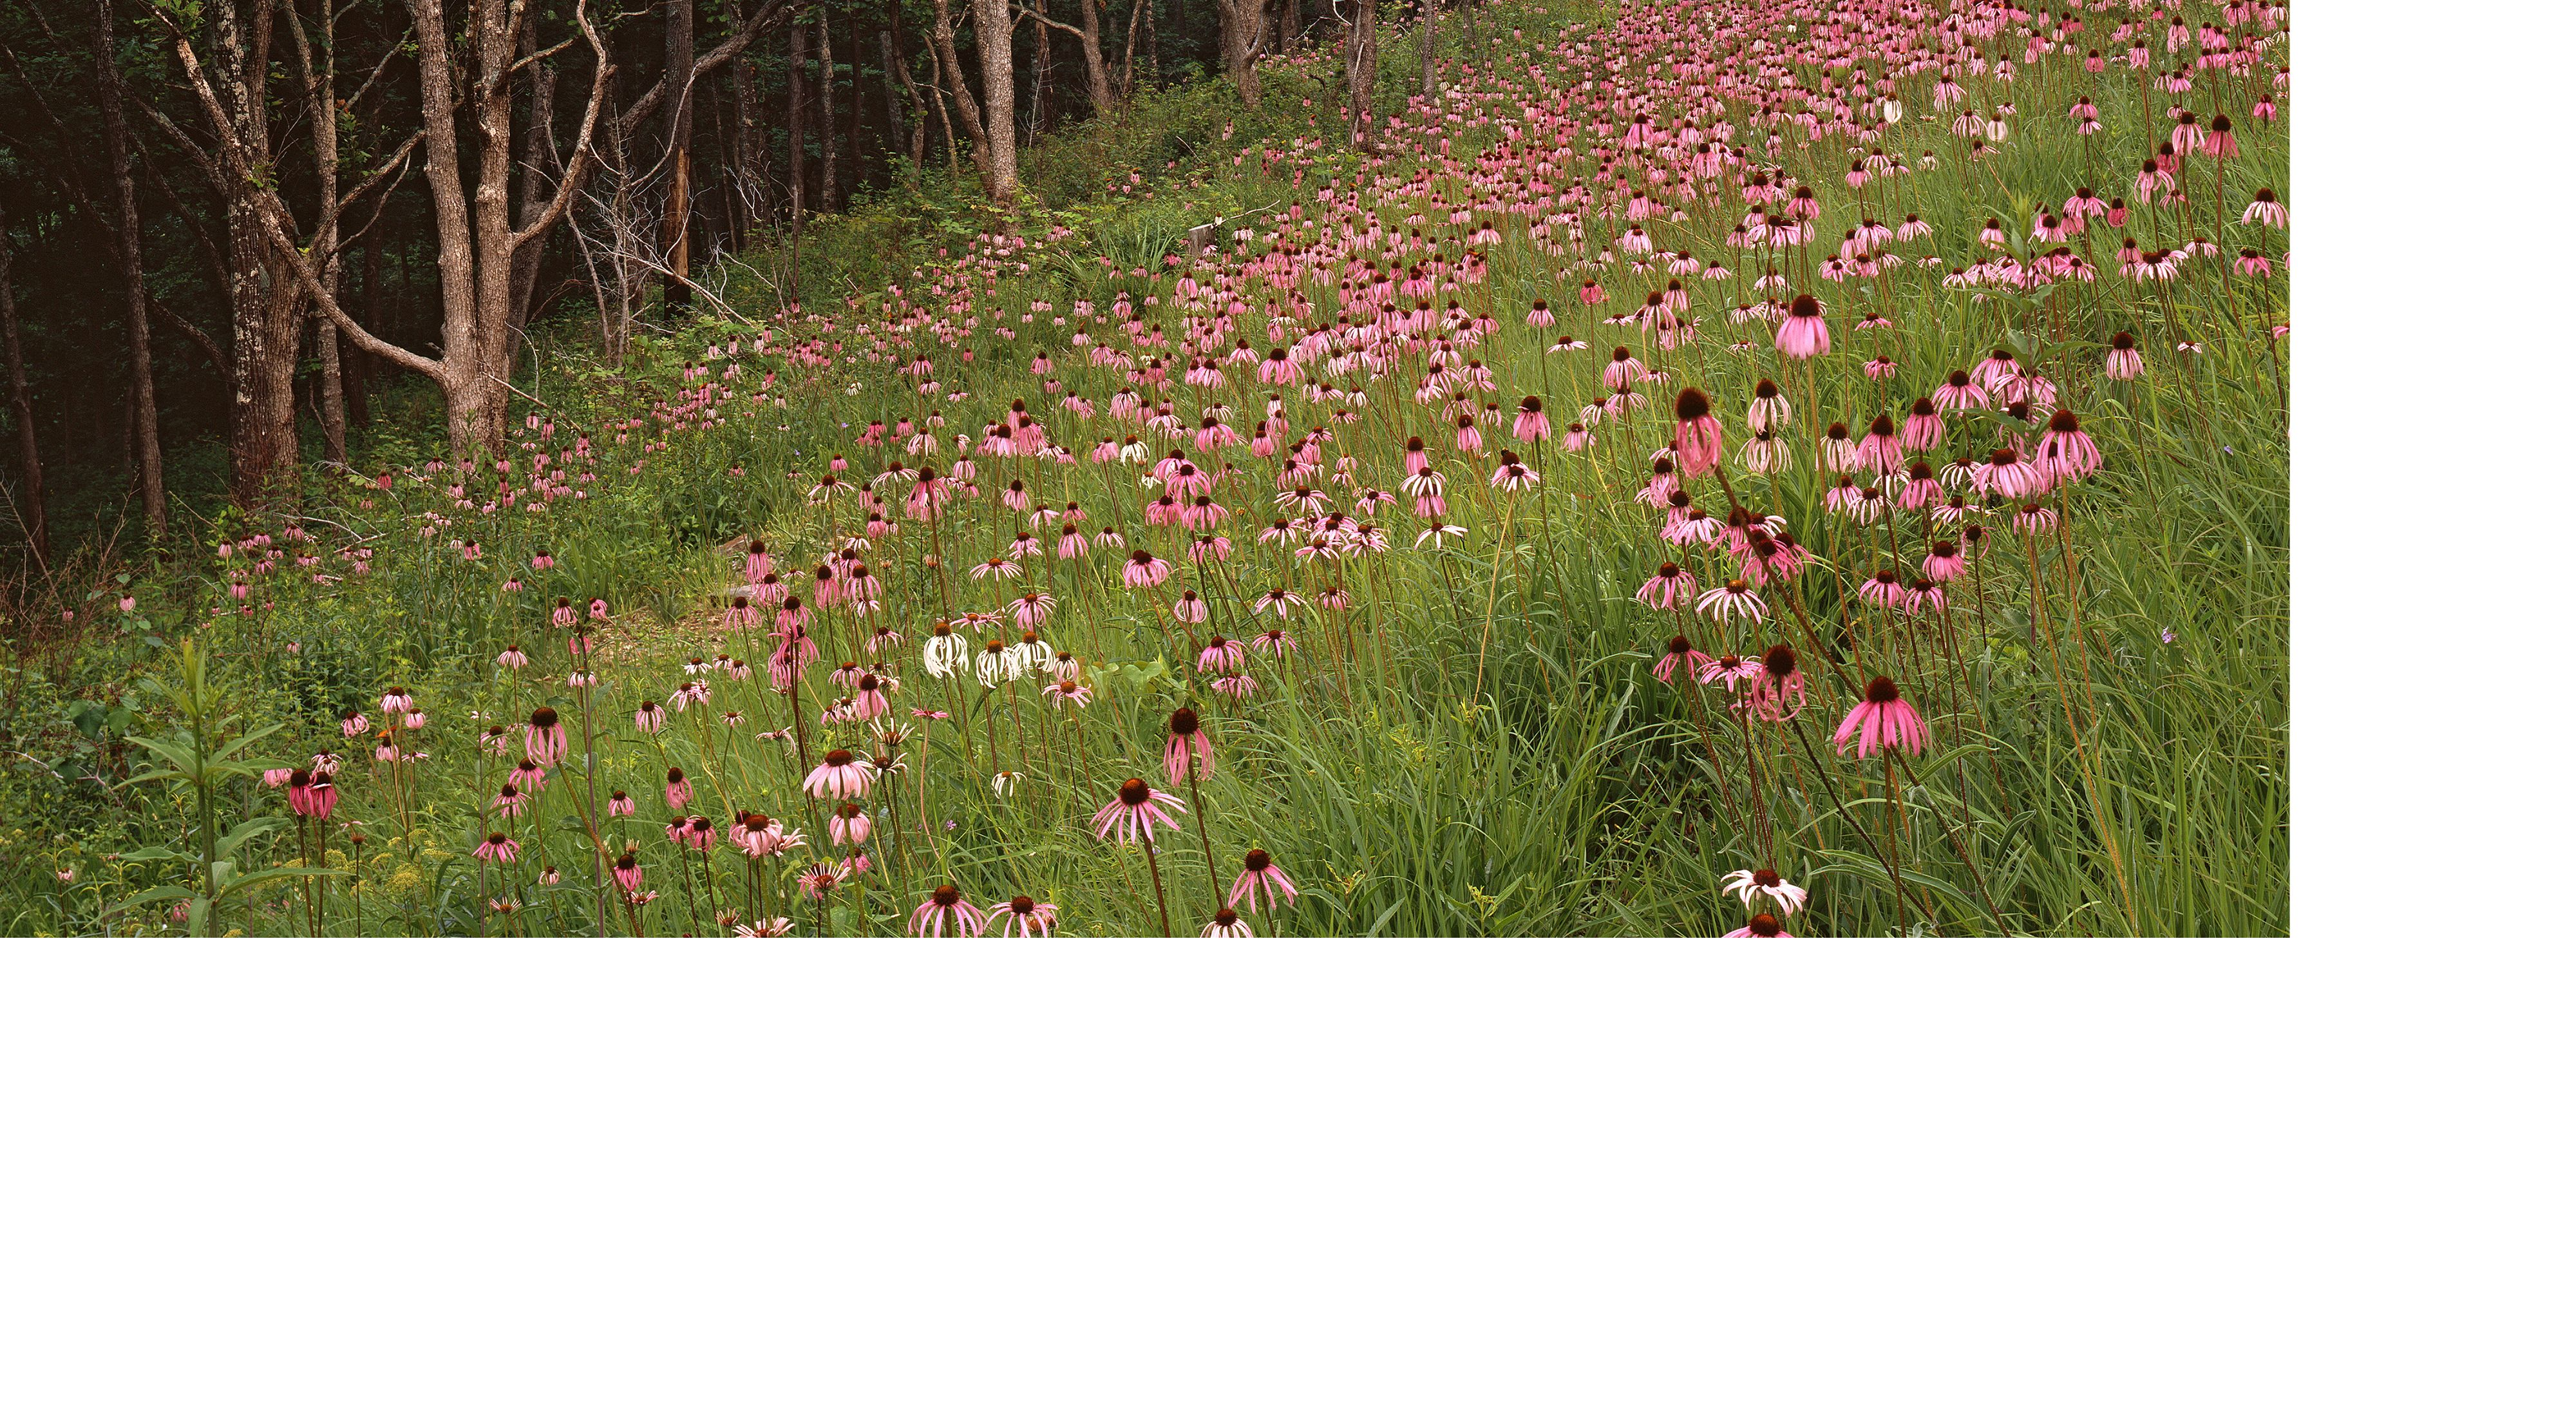 Coneflowers at Harrison County Glades.